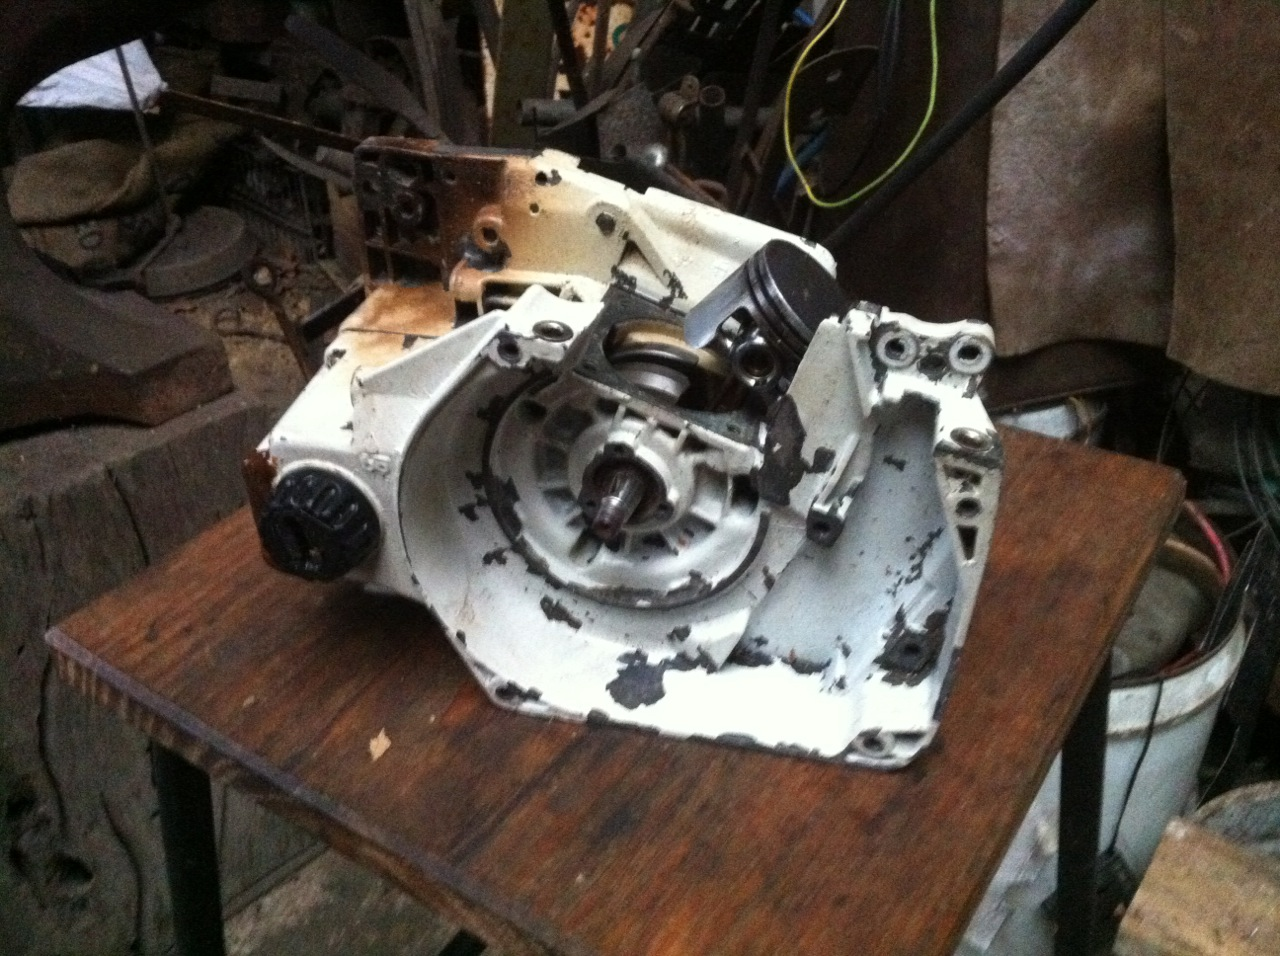 This is a typical metal chassis from a Stihl professional saw (in this case  a Stihl 024), viewed from the flywheel side (see tapered crankshaft with  keyway) ...